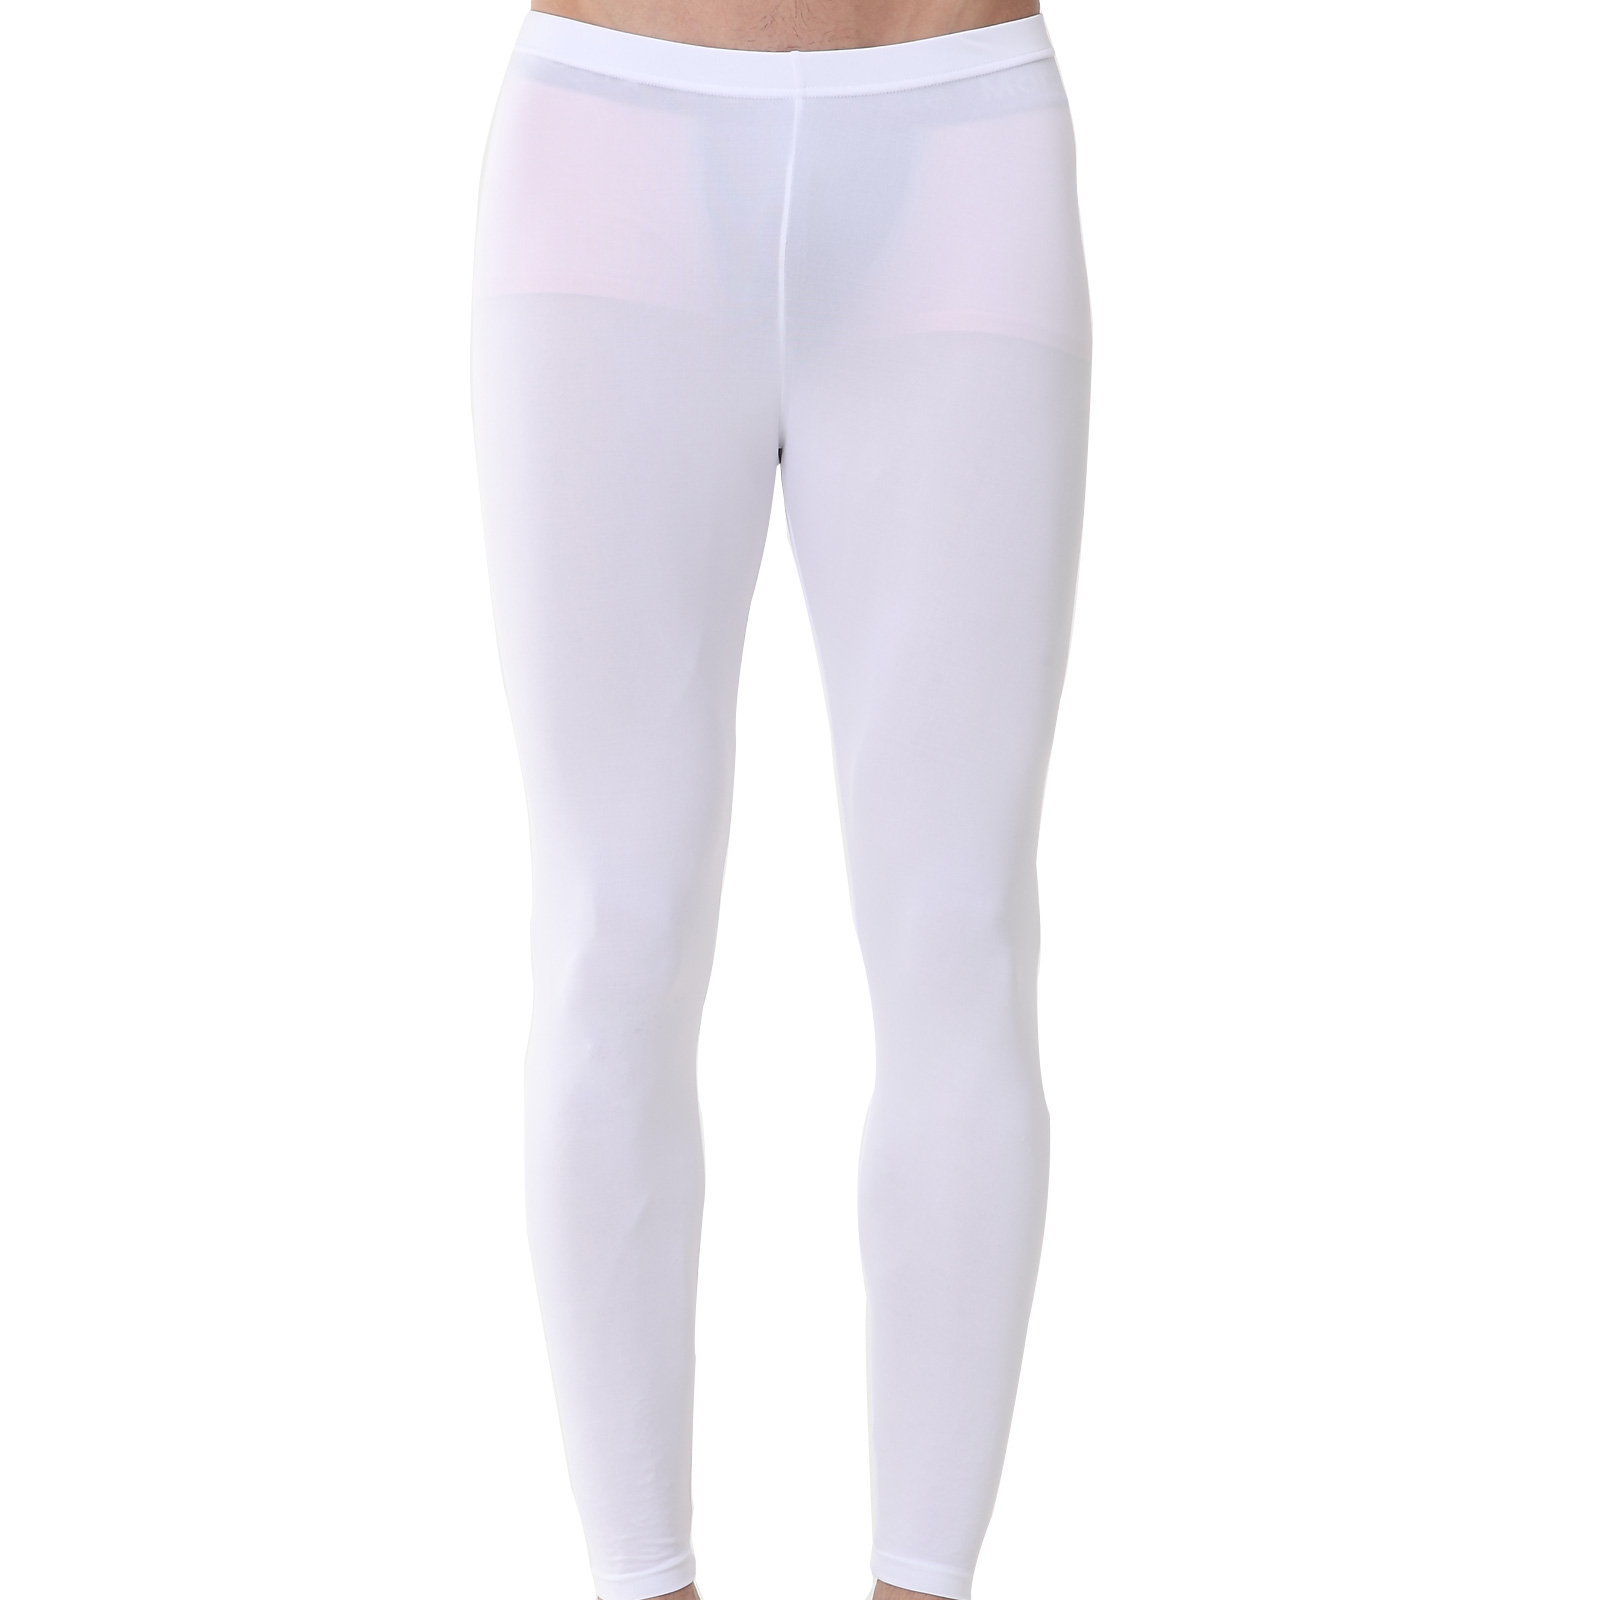 ... Mens Compression Long Pants EP White. Women s Compression ... 5d82b0f95ce7